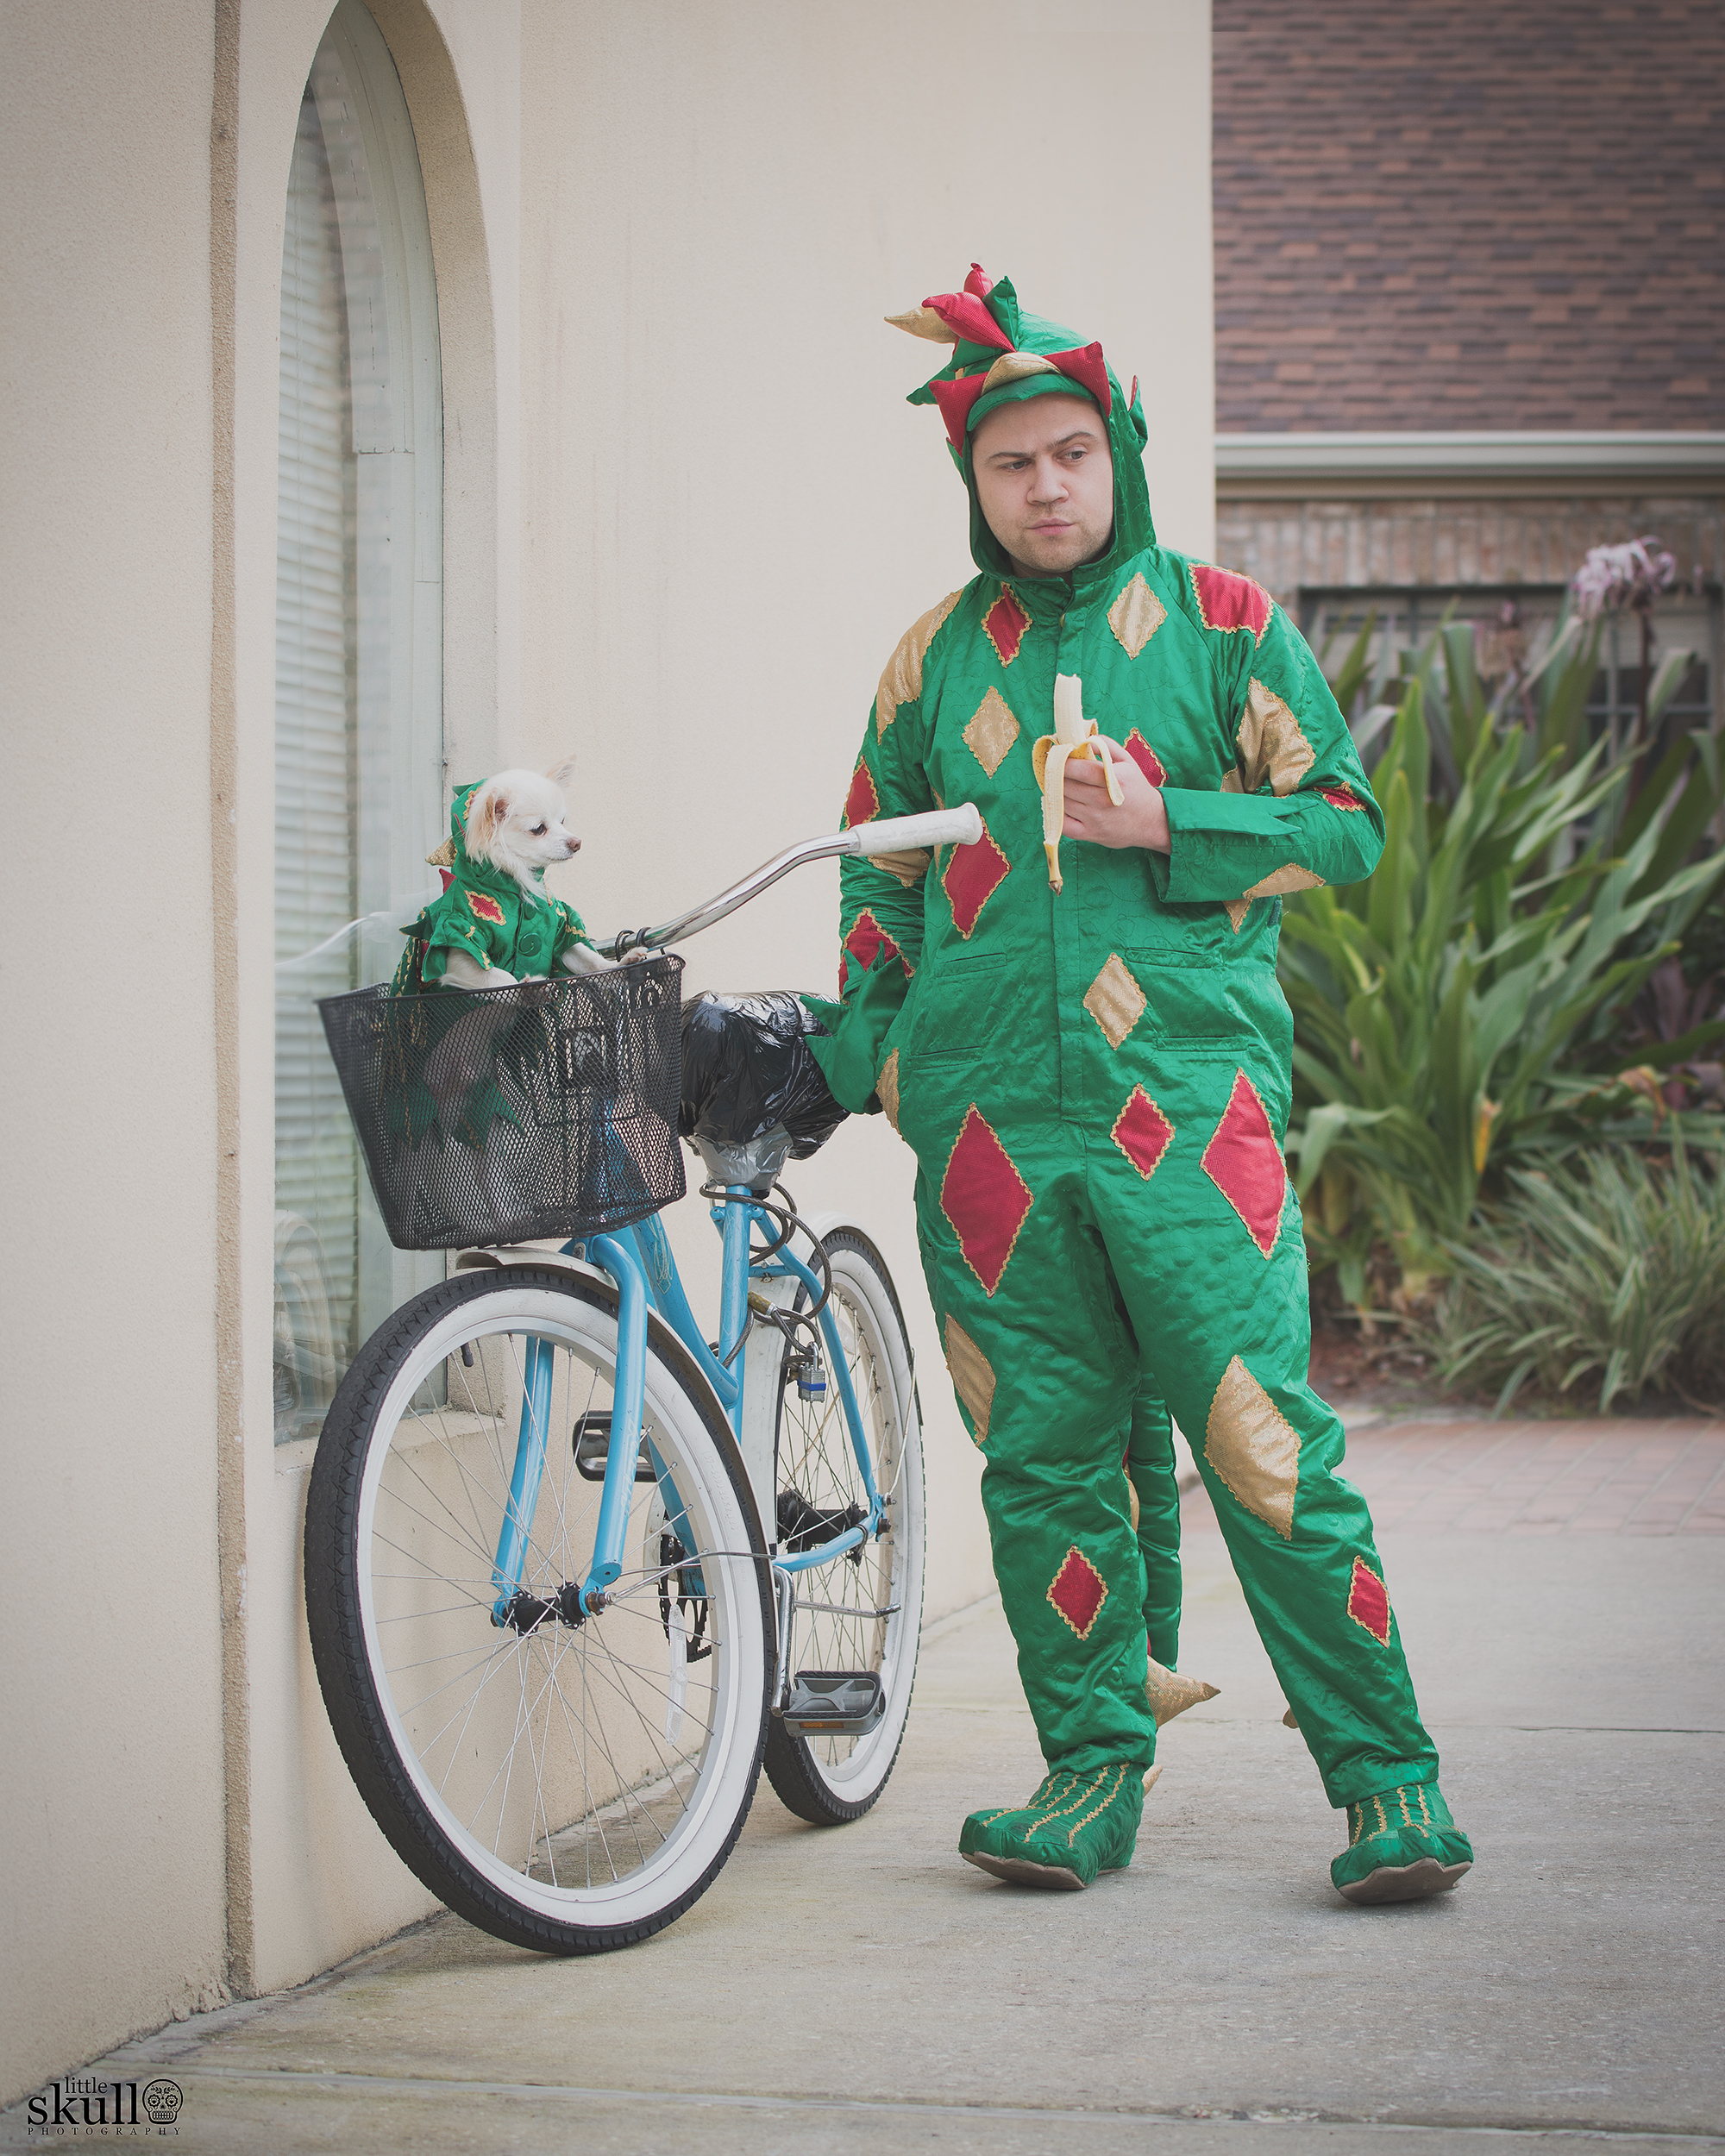 Piff the Magic Dragon and Mr. Piffles pose next to a Bike in Tampa, FL for Little Skull Photography